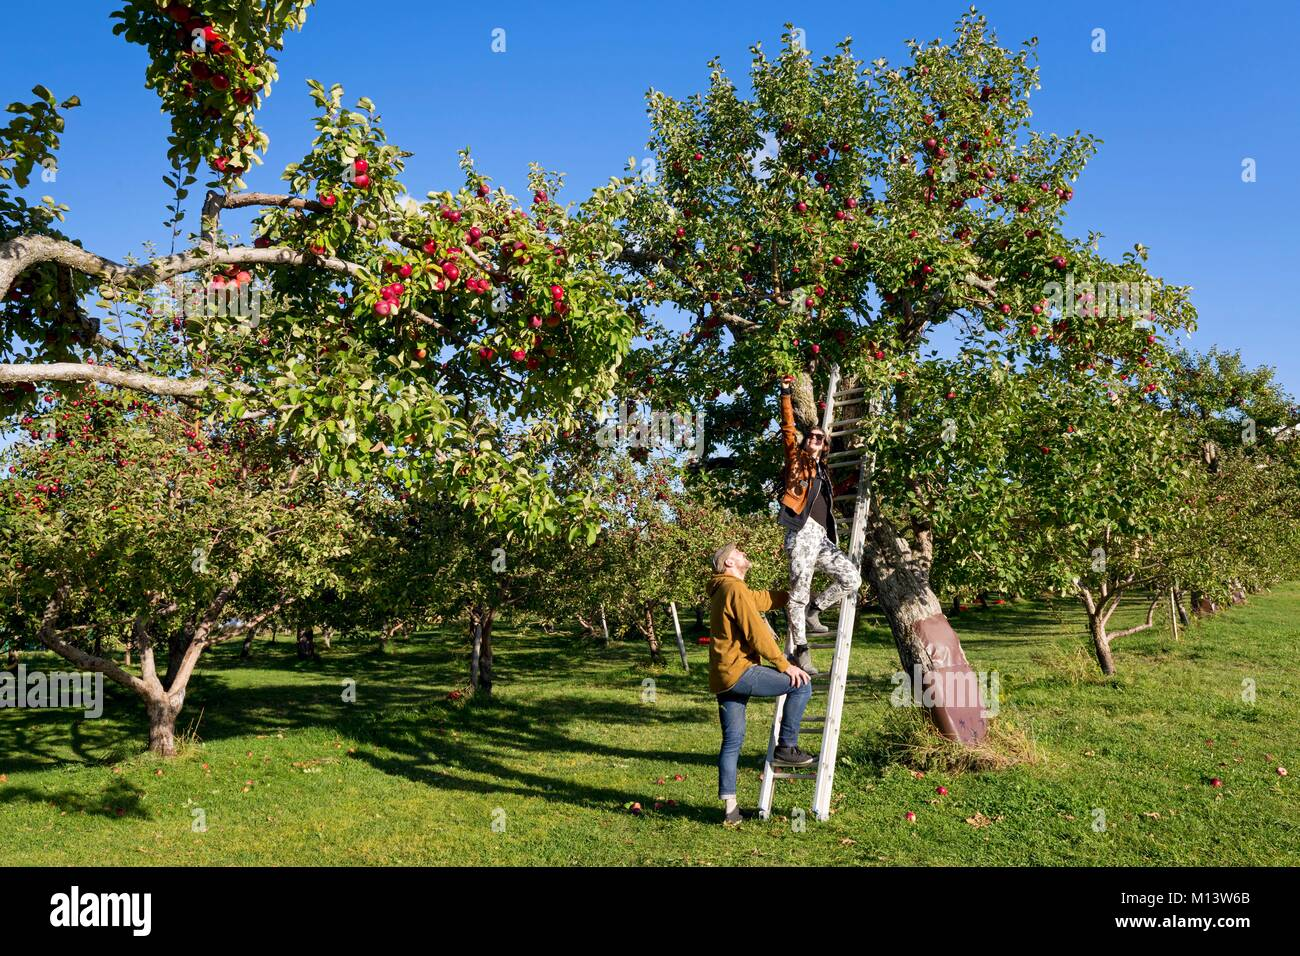 Canada, province of Quebec, the region of Quebec City, the island of Orleans, orchard, apple harvest Model release - Stock Image